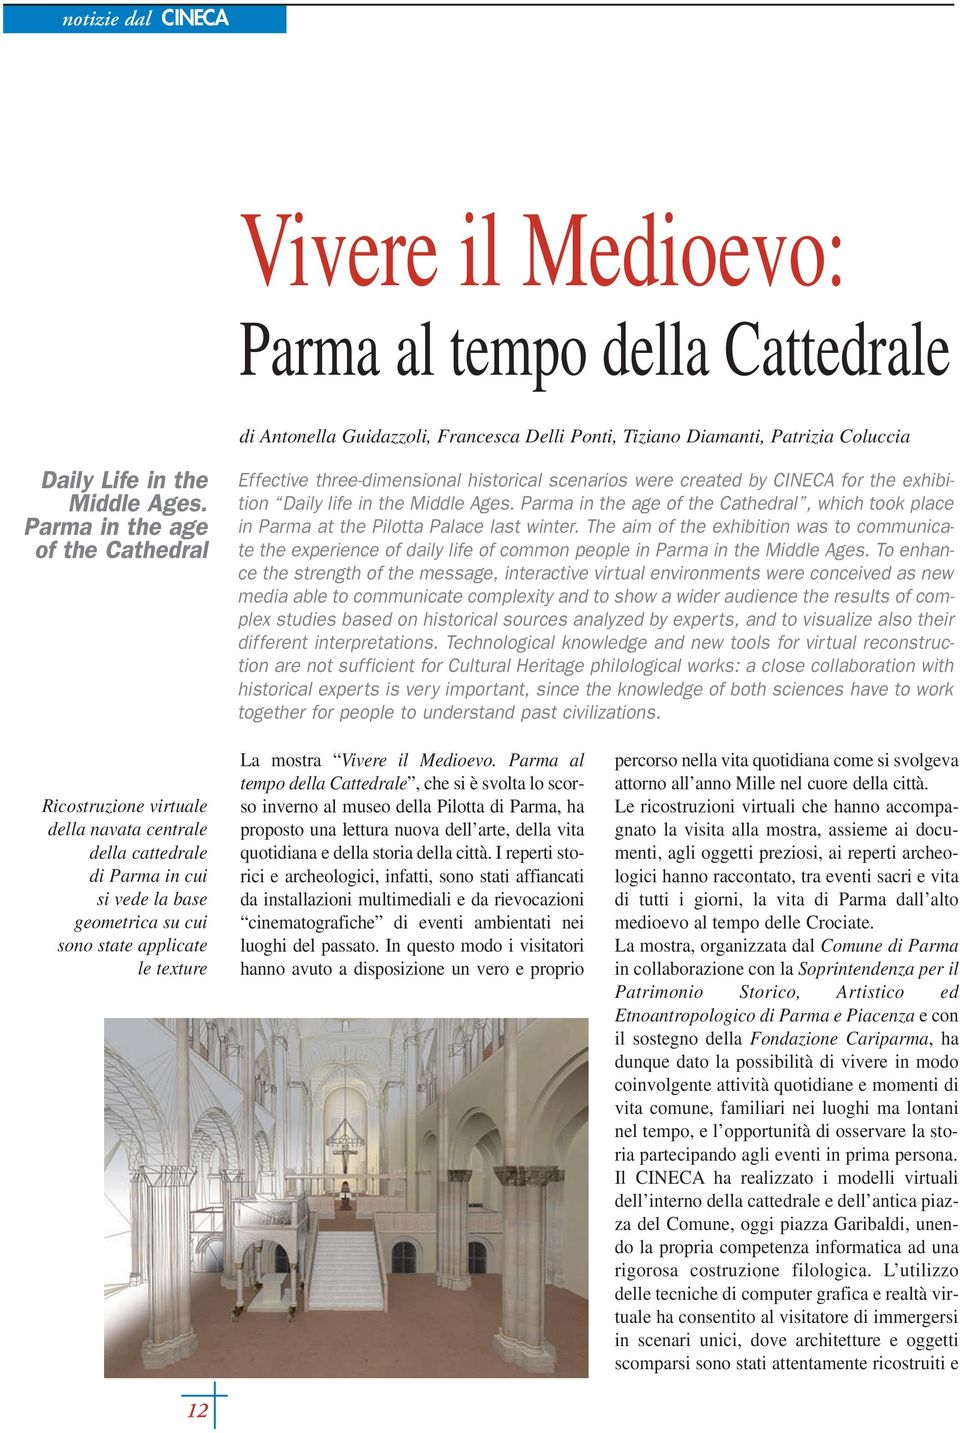 Parma in the age of the Cathedral, which took place in Parma at the Pilotta Palace last winter.